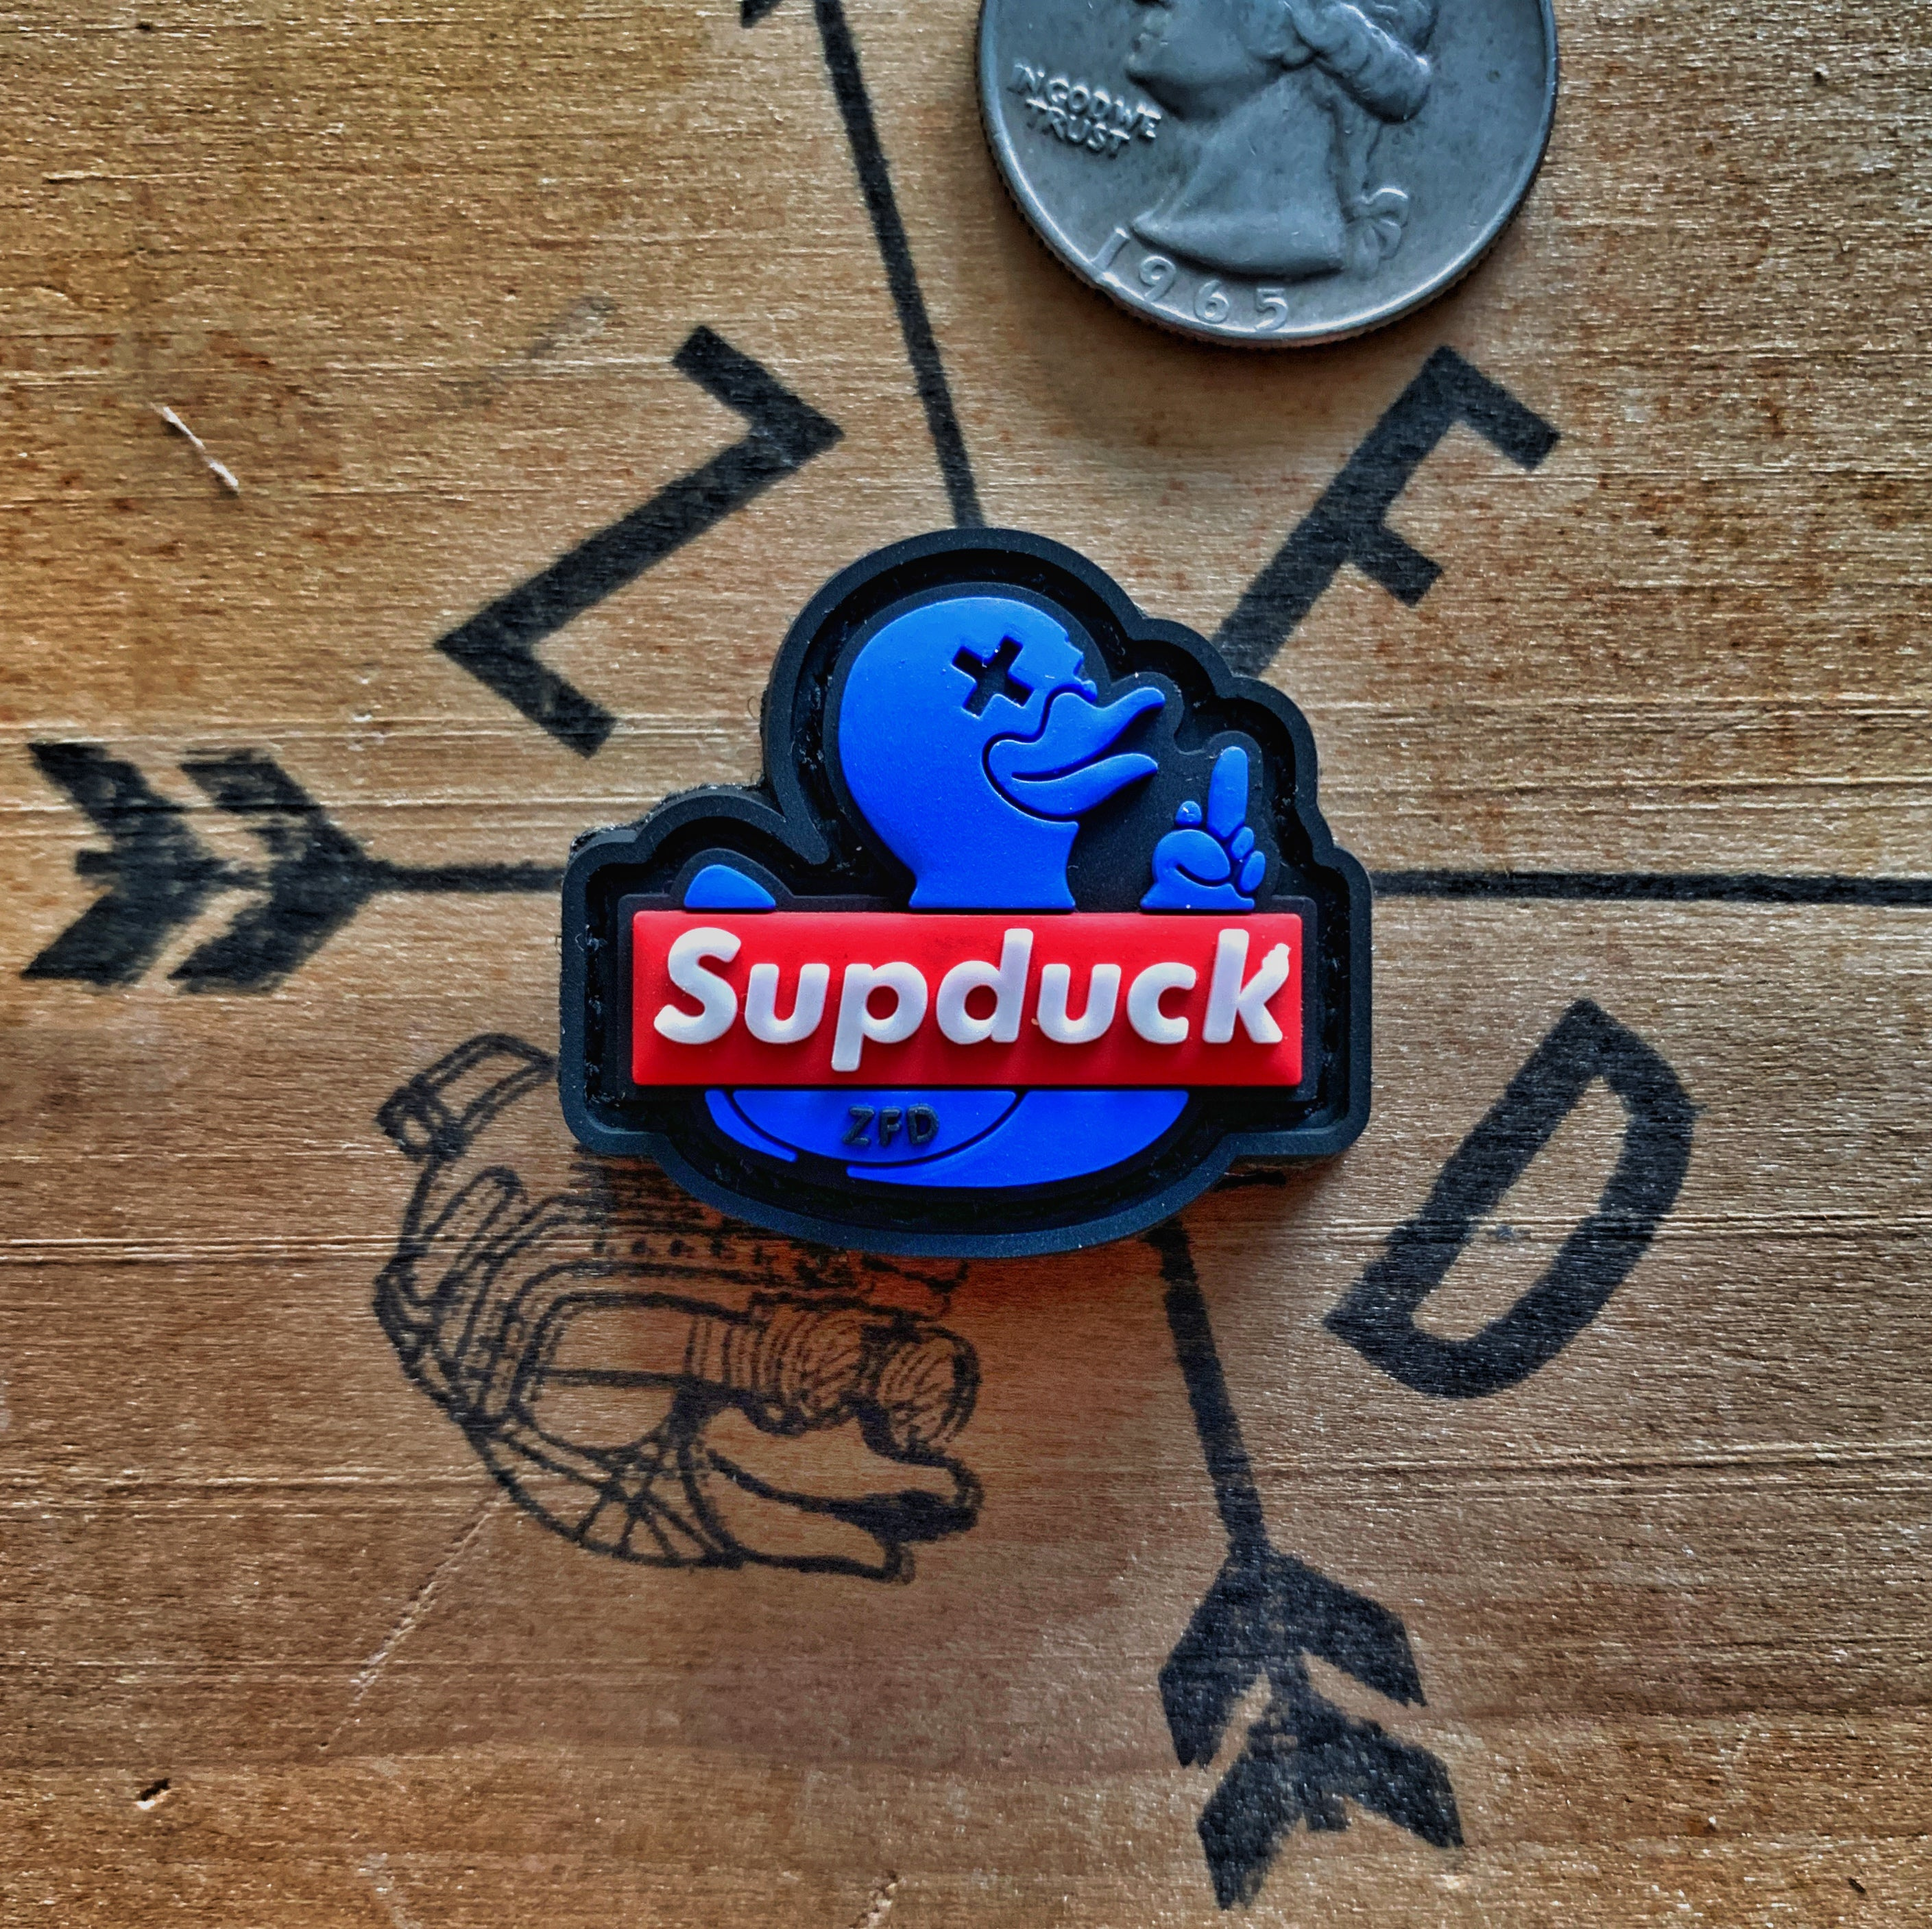 Zero Fucks Duck™ SUPDUCK Ranger Eye Morale Patch Series